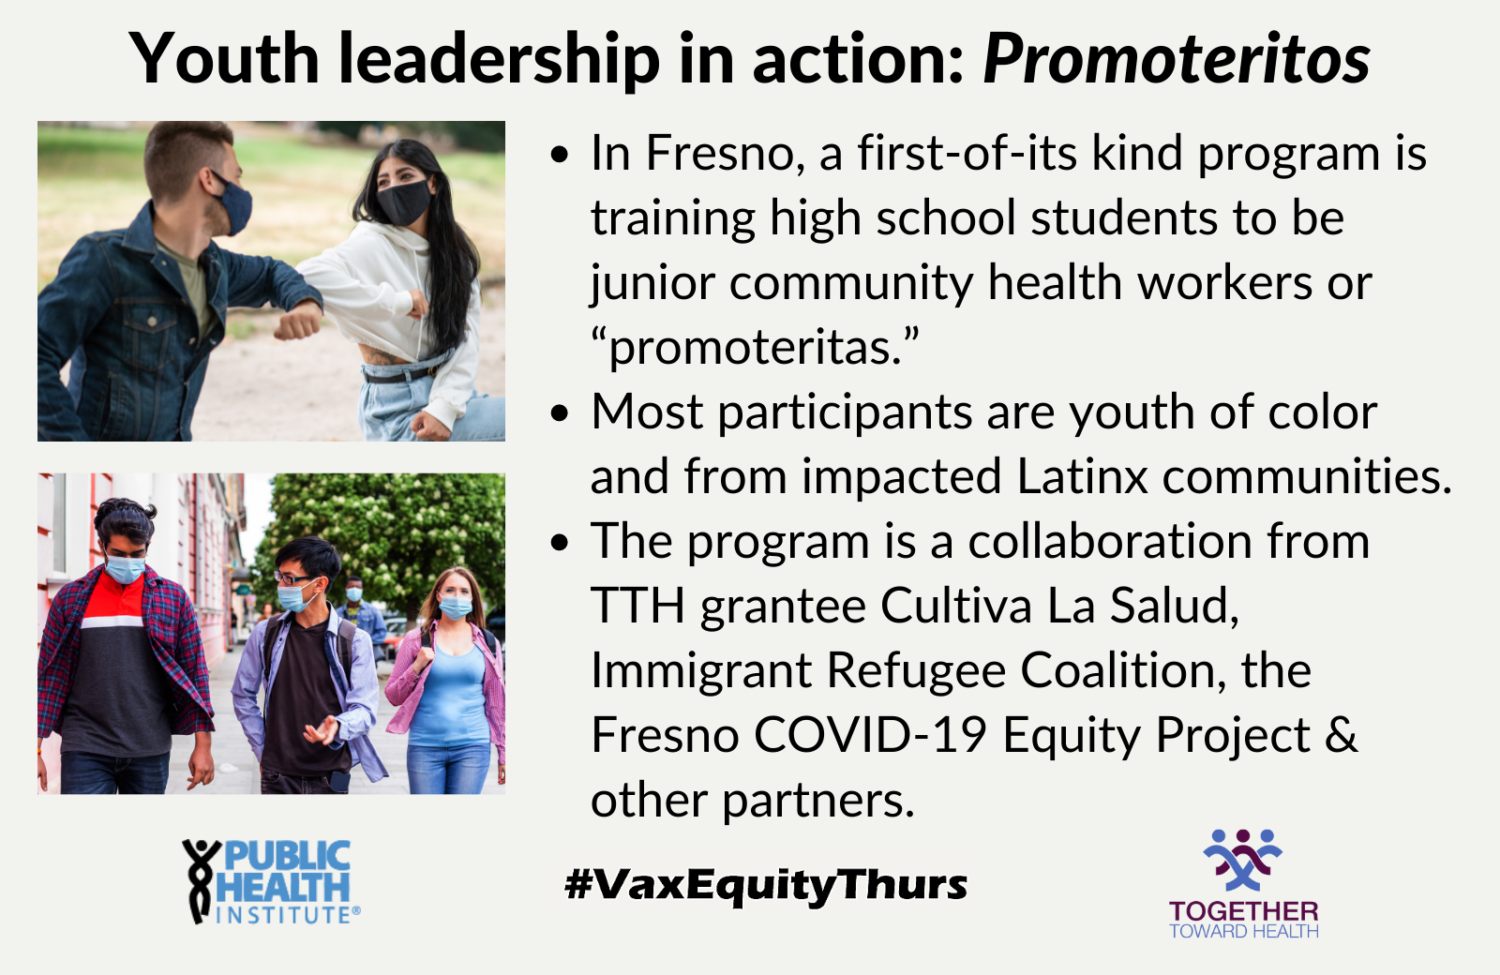 """Youth leadership in action: In Fresno, a first-of-its kind program is training high school students to be junior community health workers or """"promoteritas."""" Most participants are youth of color and from impacted Latinx communities. The program is a collaboration from TTH grantee Cultiva La Salud, Immigrant Refugee Coalition, the Fresno COVID-19 Equity Project & other partners."""